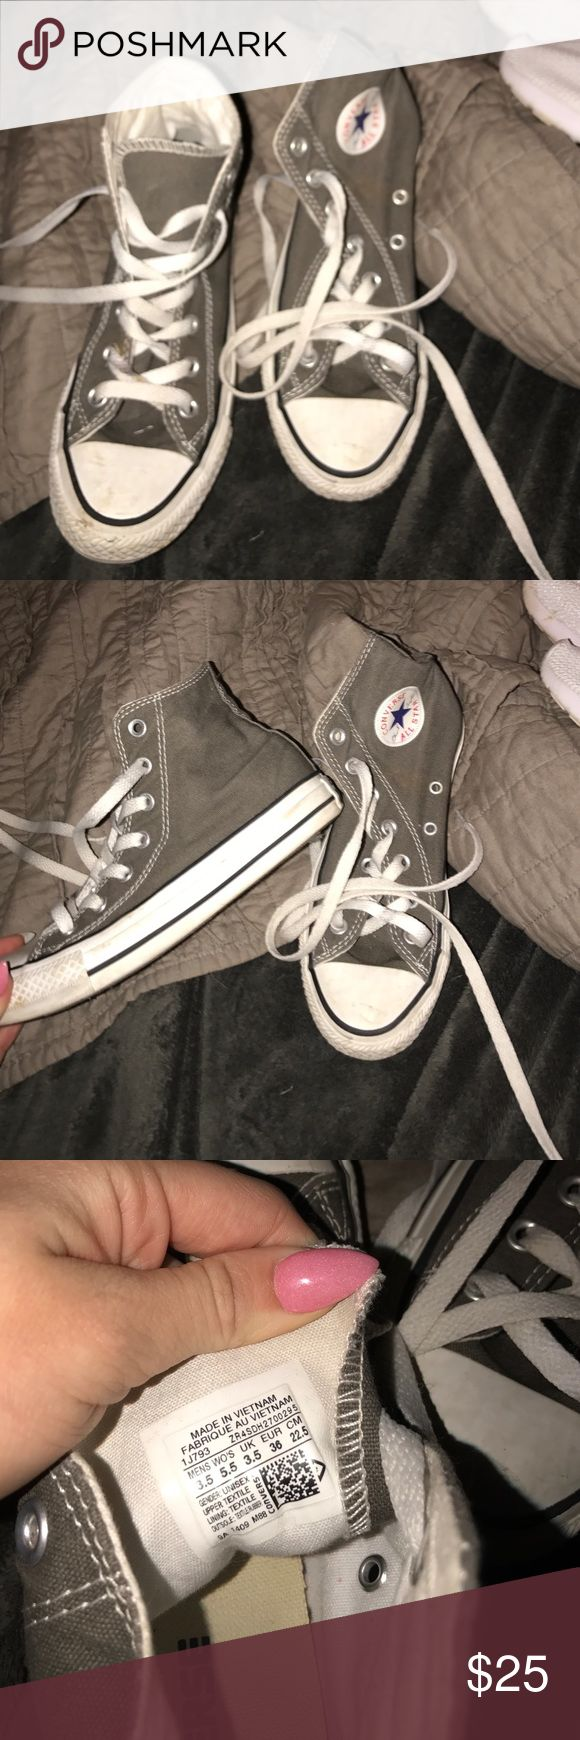 Grey high top converse These have been used but have lots of where left. Size kids 3 1/2 and woman's 5 1/2 Converse Shoes Sneakers